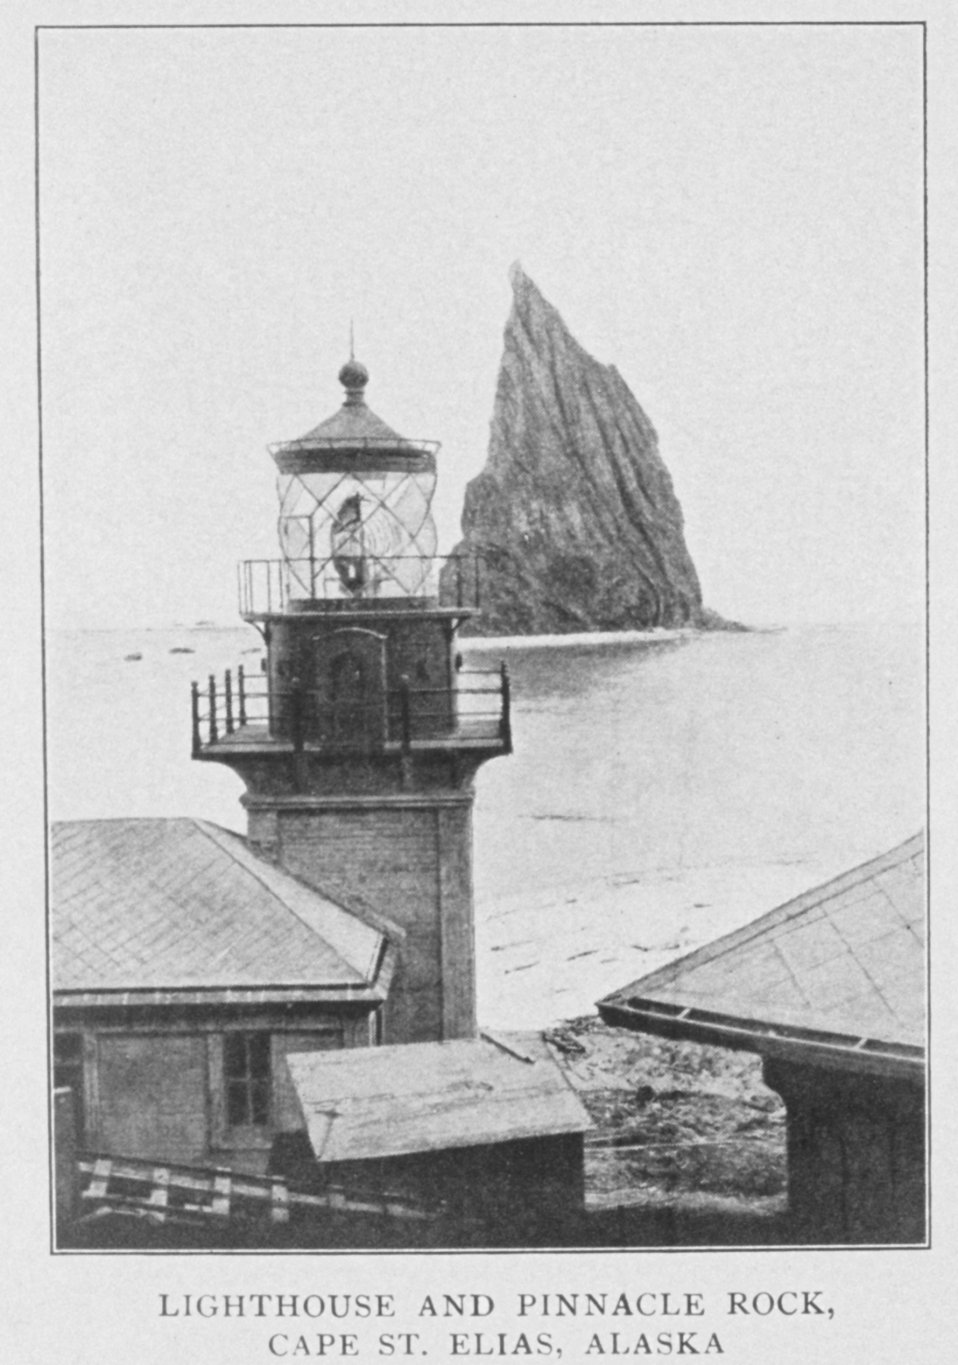 Lighthouse and Pinnacle Rock, Cape St. Elias, Alaska.  In: 'Lighthouses and Lightships of the United States' by George R. Putnam, p. 148,  1917.  Houghton Mifflin and Company, Boston.Library Call No. 527.7 P98.